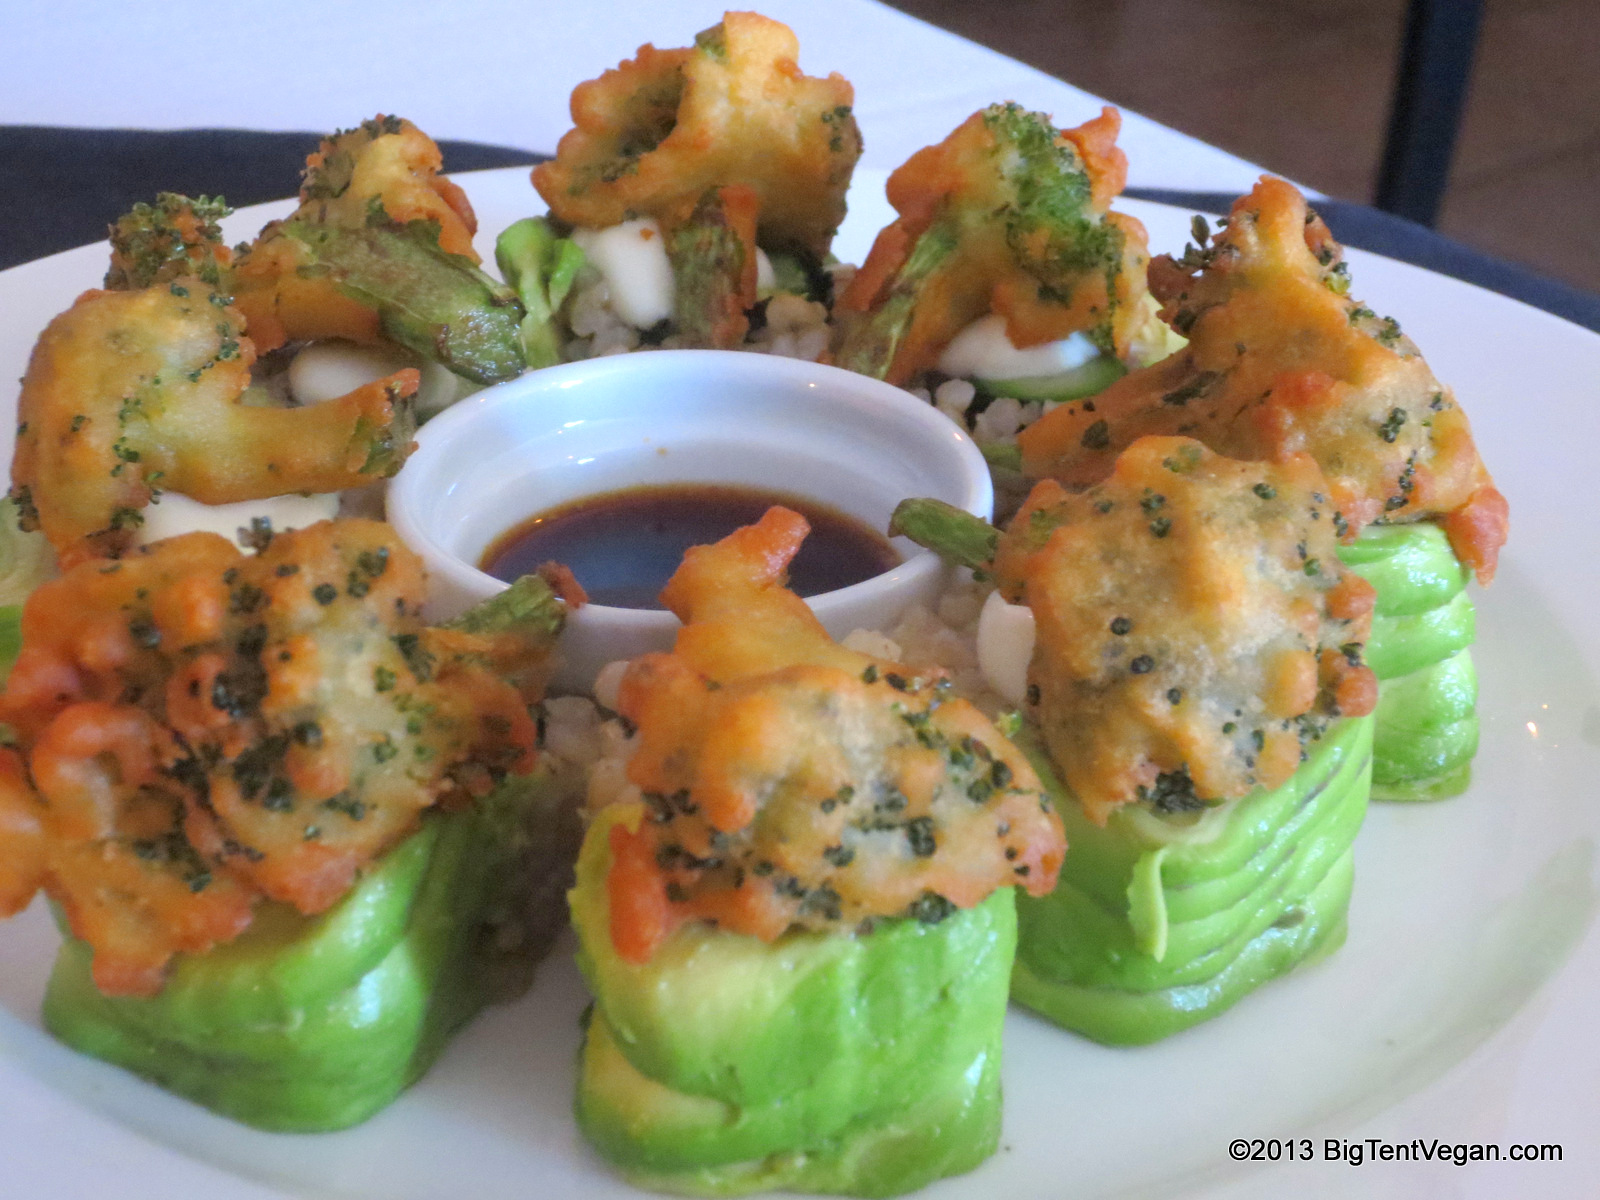 Green Forest: Asparagus and Carrot Roll wrapped in Avocado slices, topped with Tempura Broccoli and Yuzu Citrus Mayo, served with Ginger Soy Sauce.